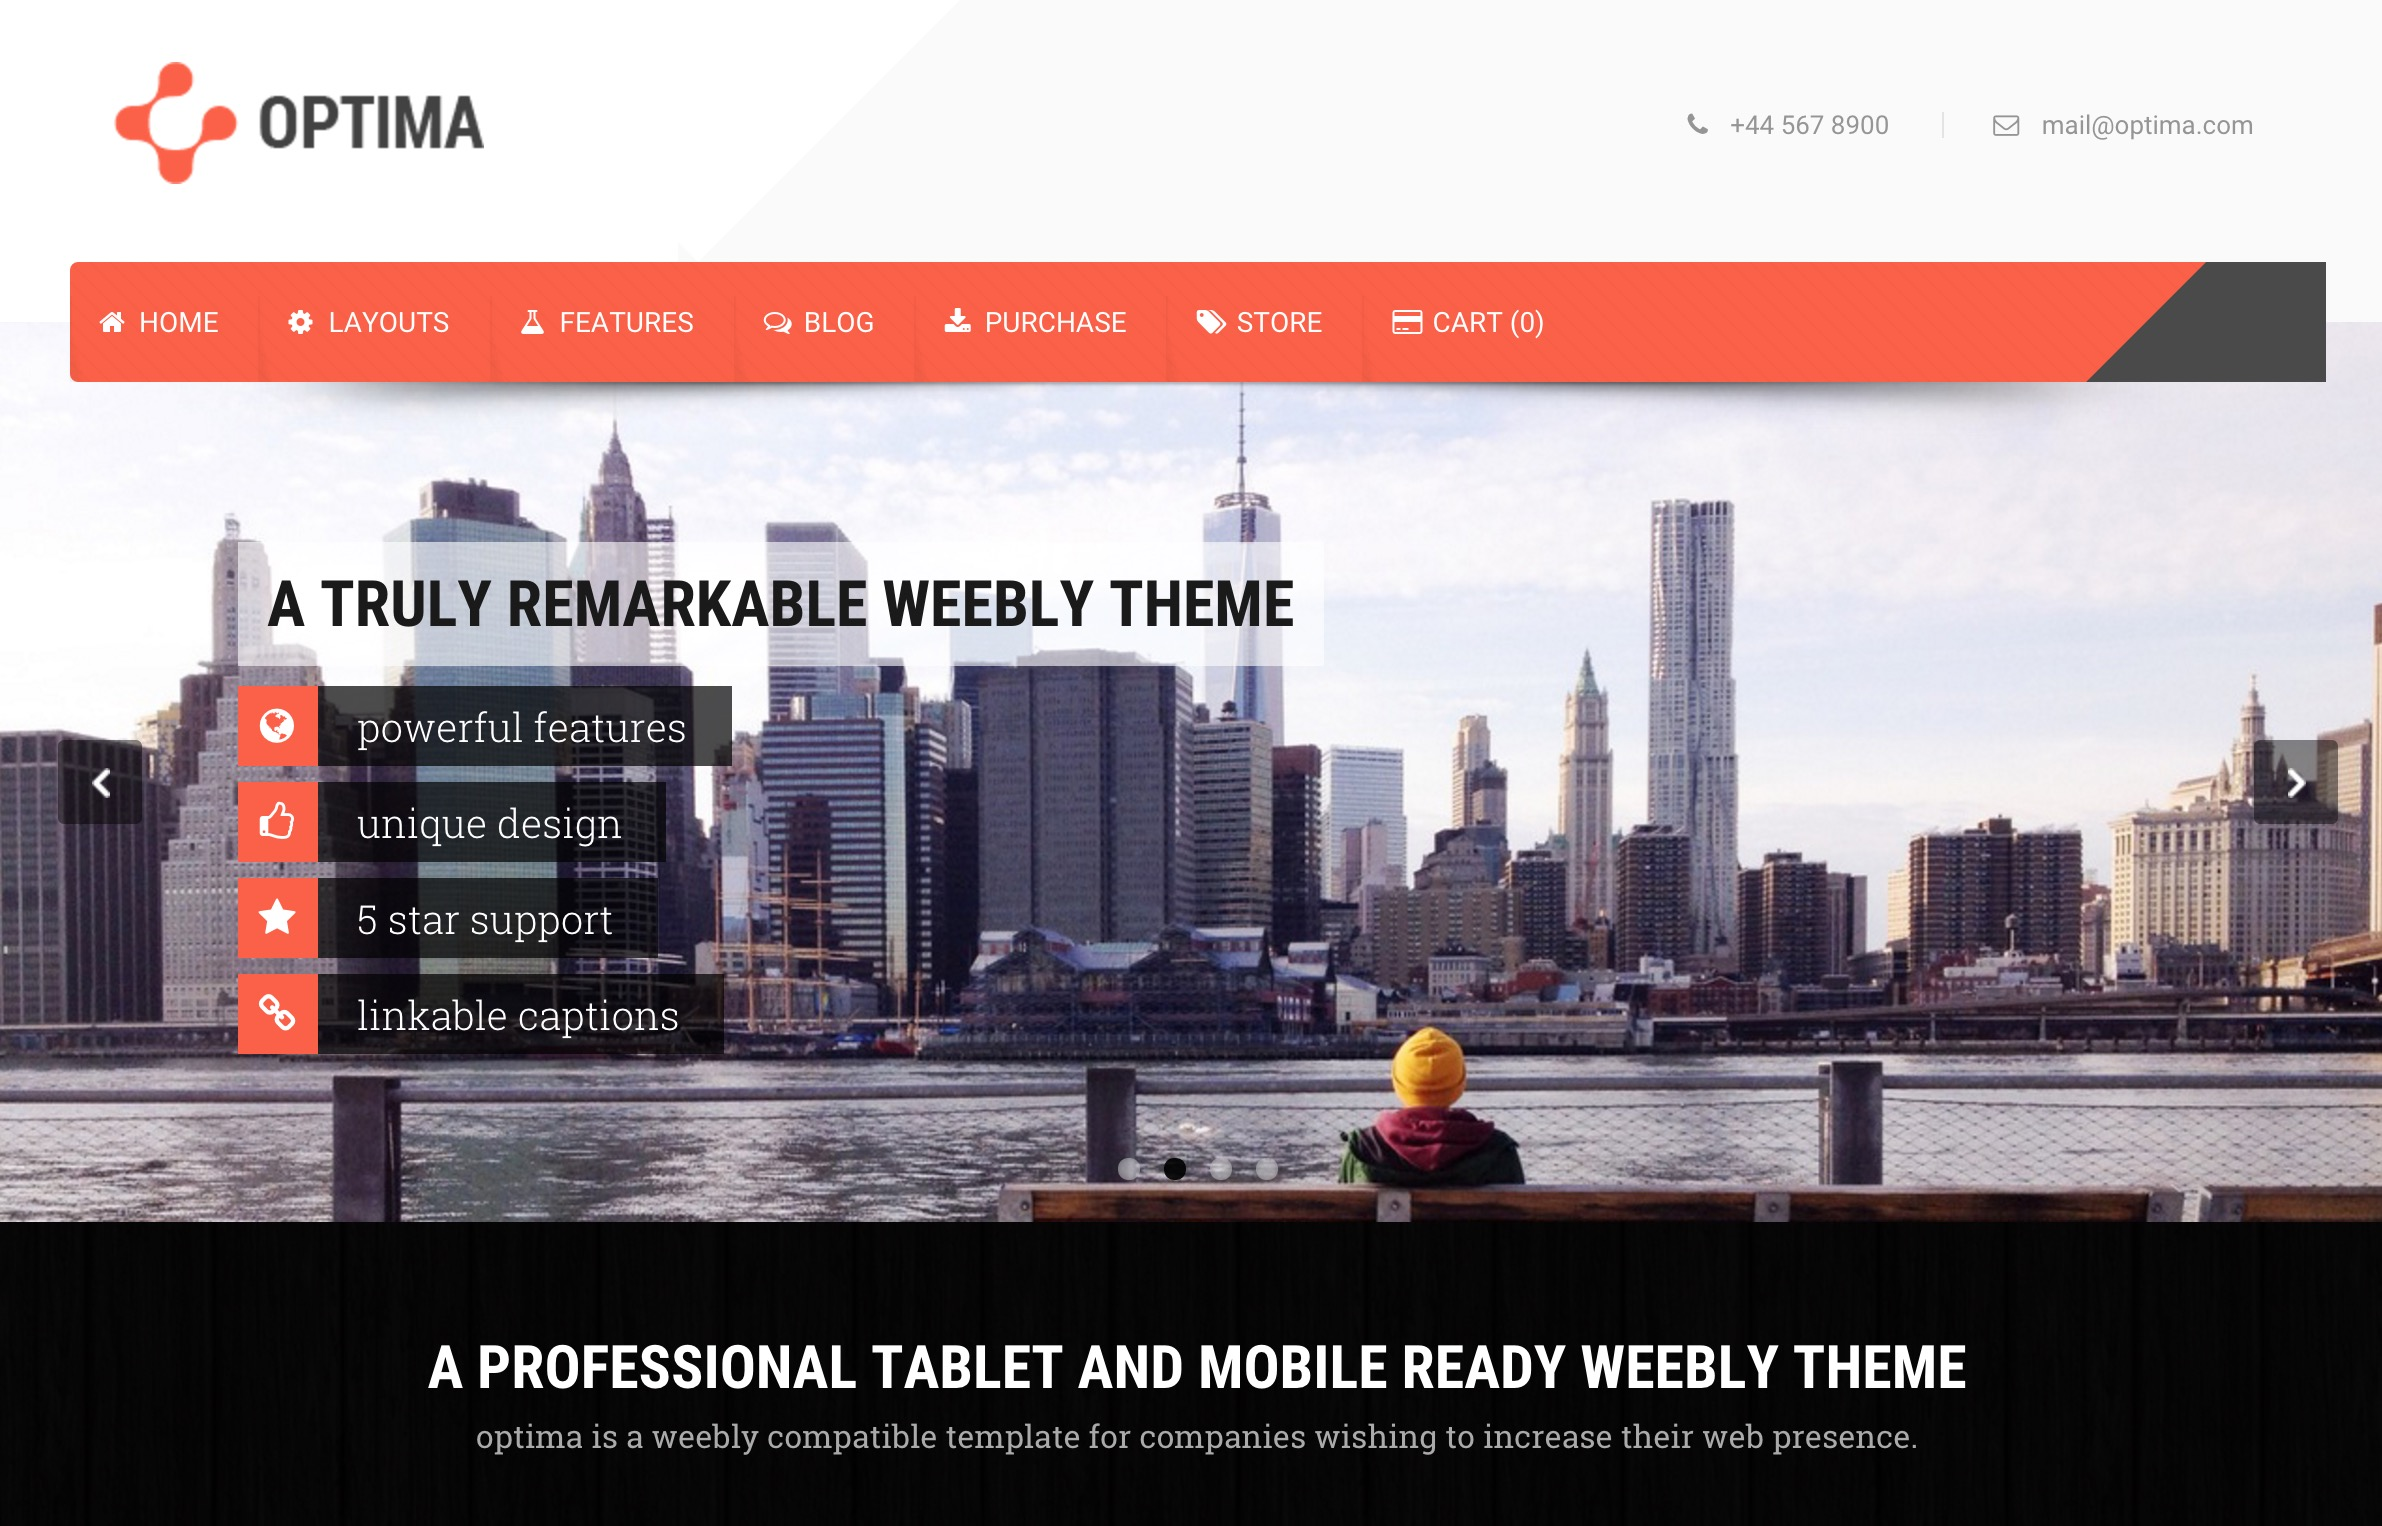 Optima Weebly Theme